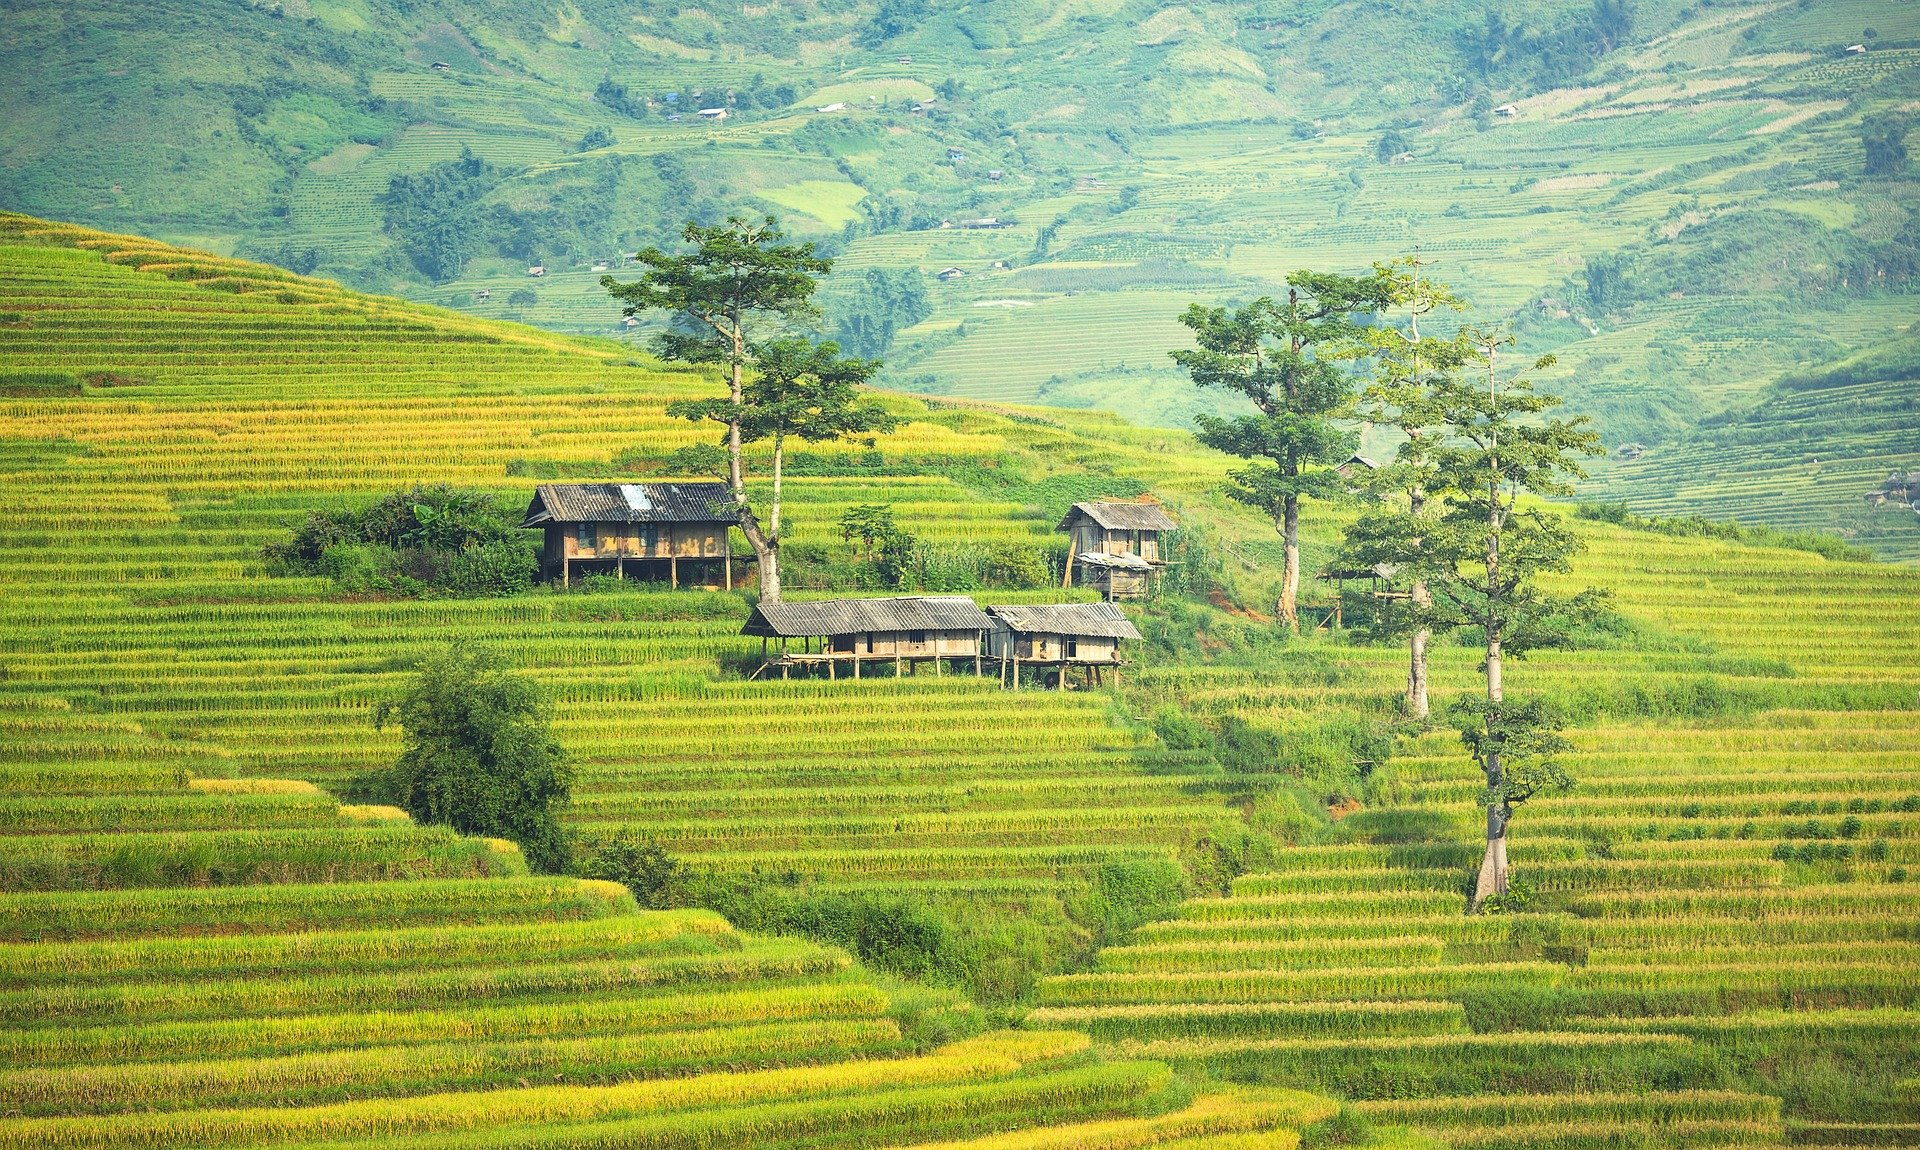 Pictured - A village in Thailand situated in the agricultural area | Source: Pixabay